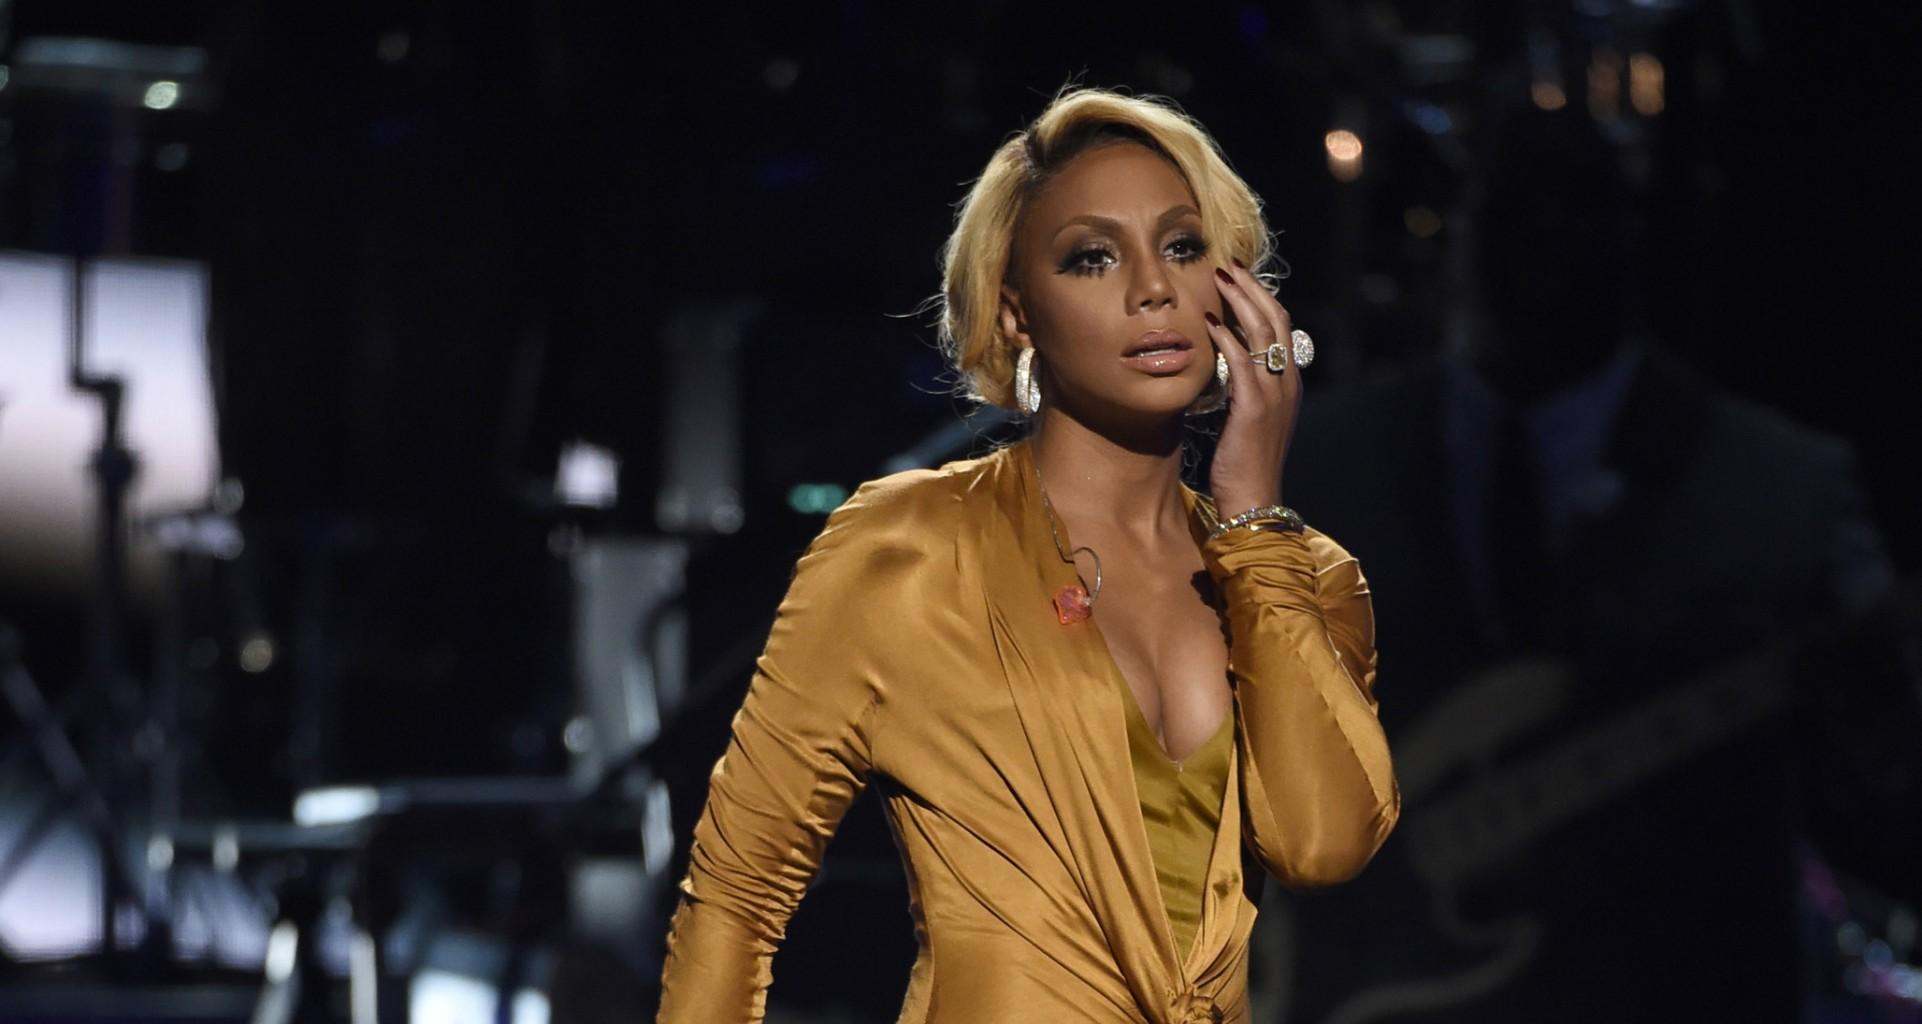 Tamar Braxton Is Coming Home To Meet Her Fans